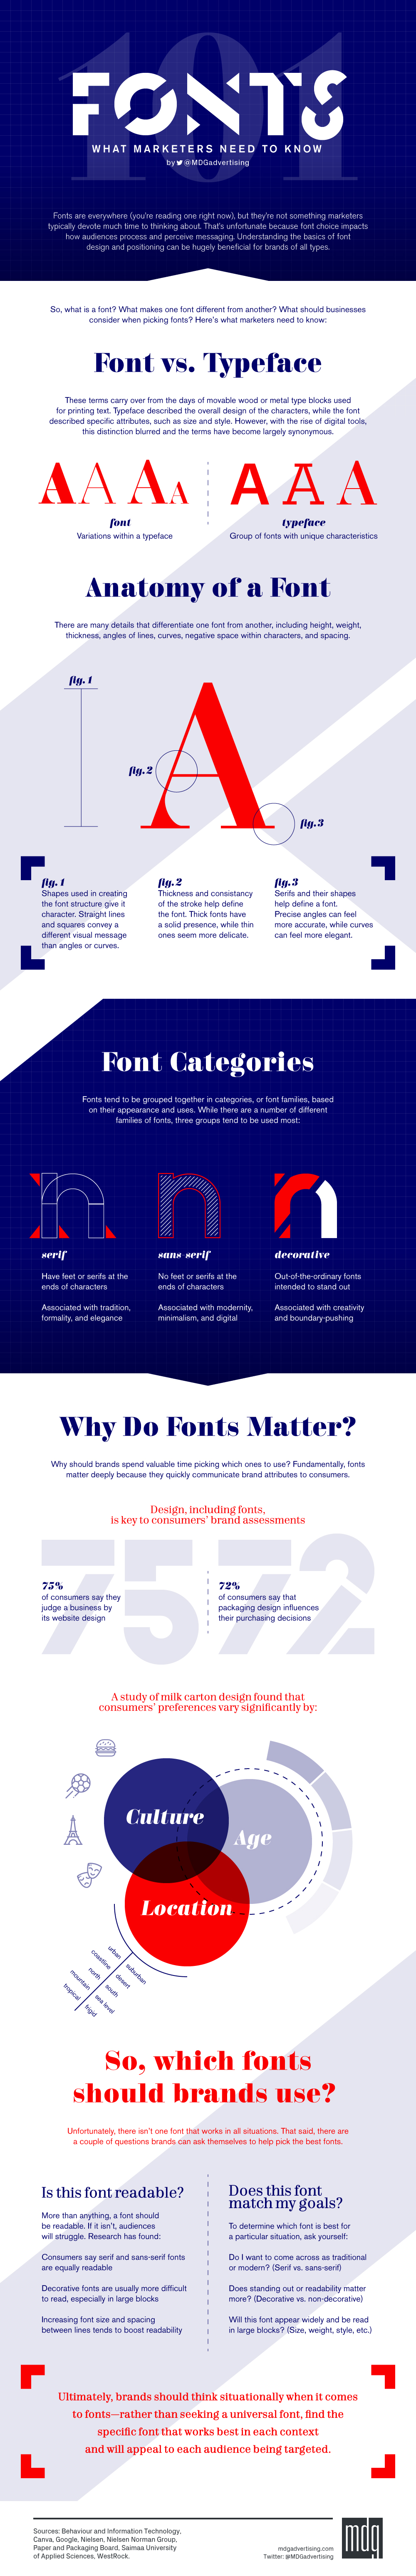 Infographic provides an overview of key considerations for website fonts